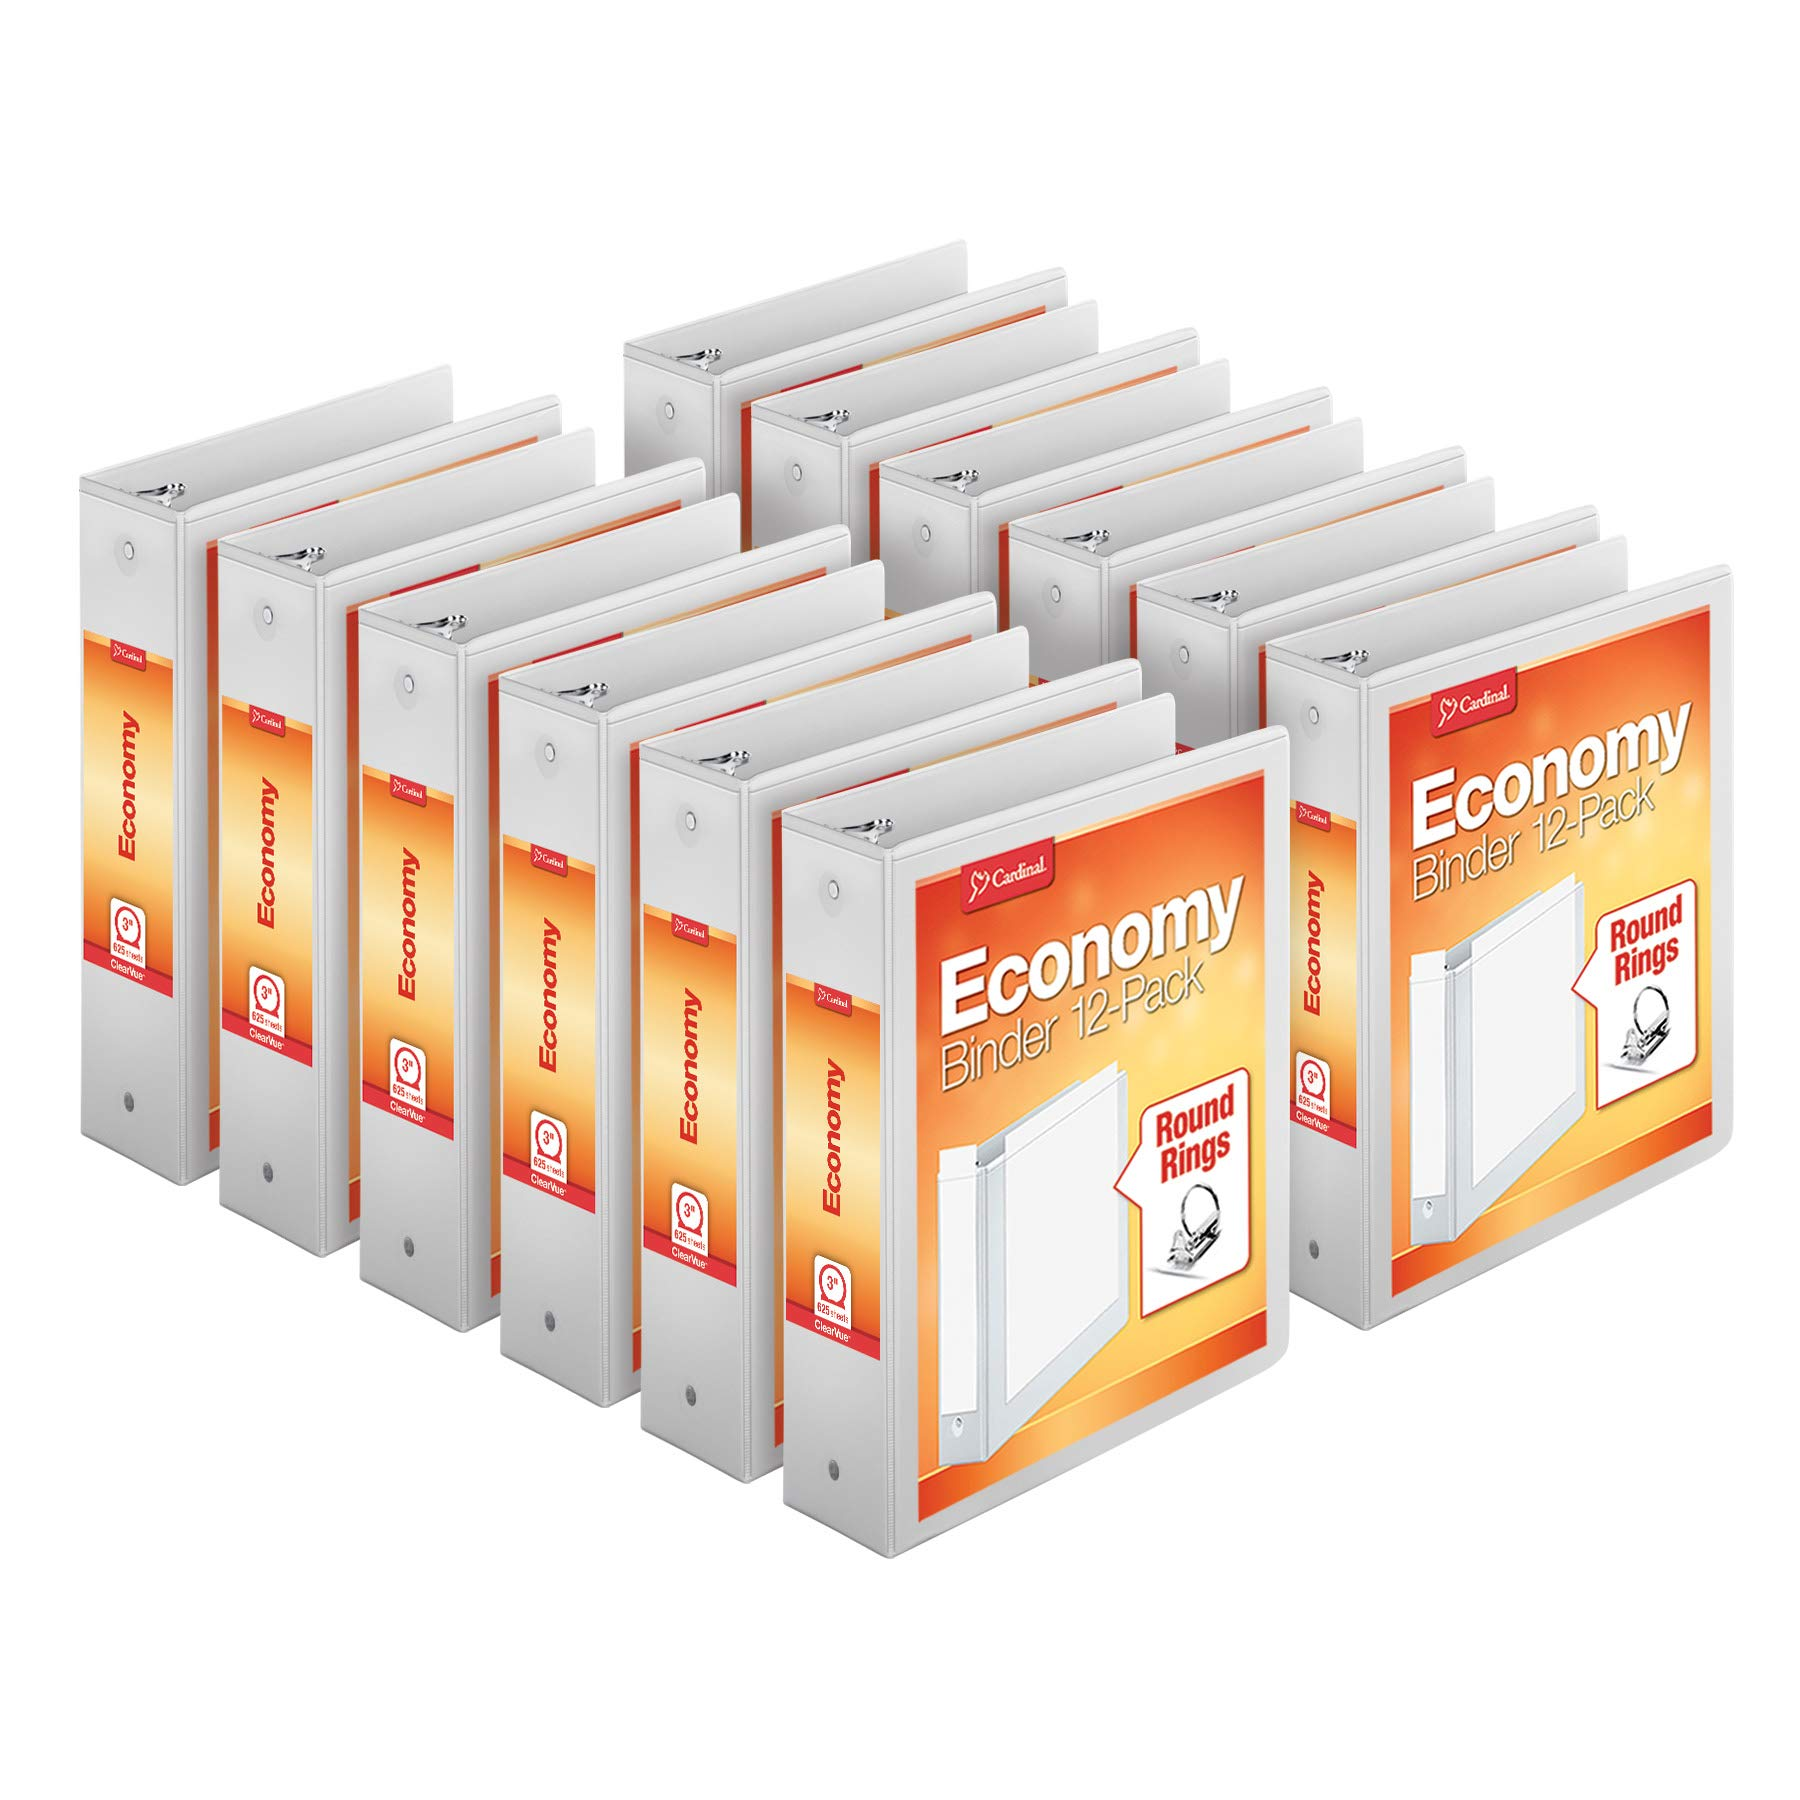 Cardinal Economy 3-Ring Binders, 3'', Round Rings, Holds 625 Sheets, ClearVue Presentation View, Non-Stick, White, Carton of 12 (90651)